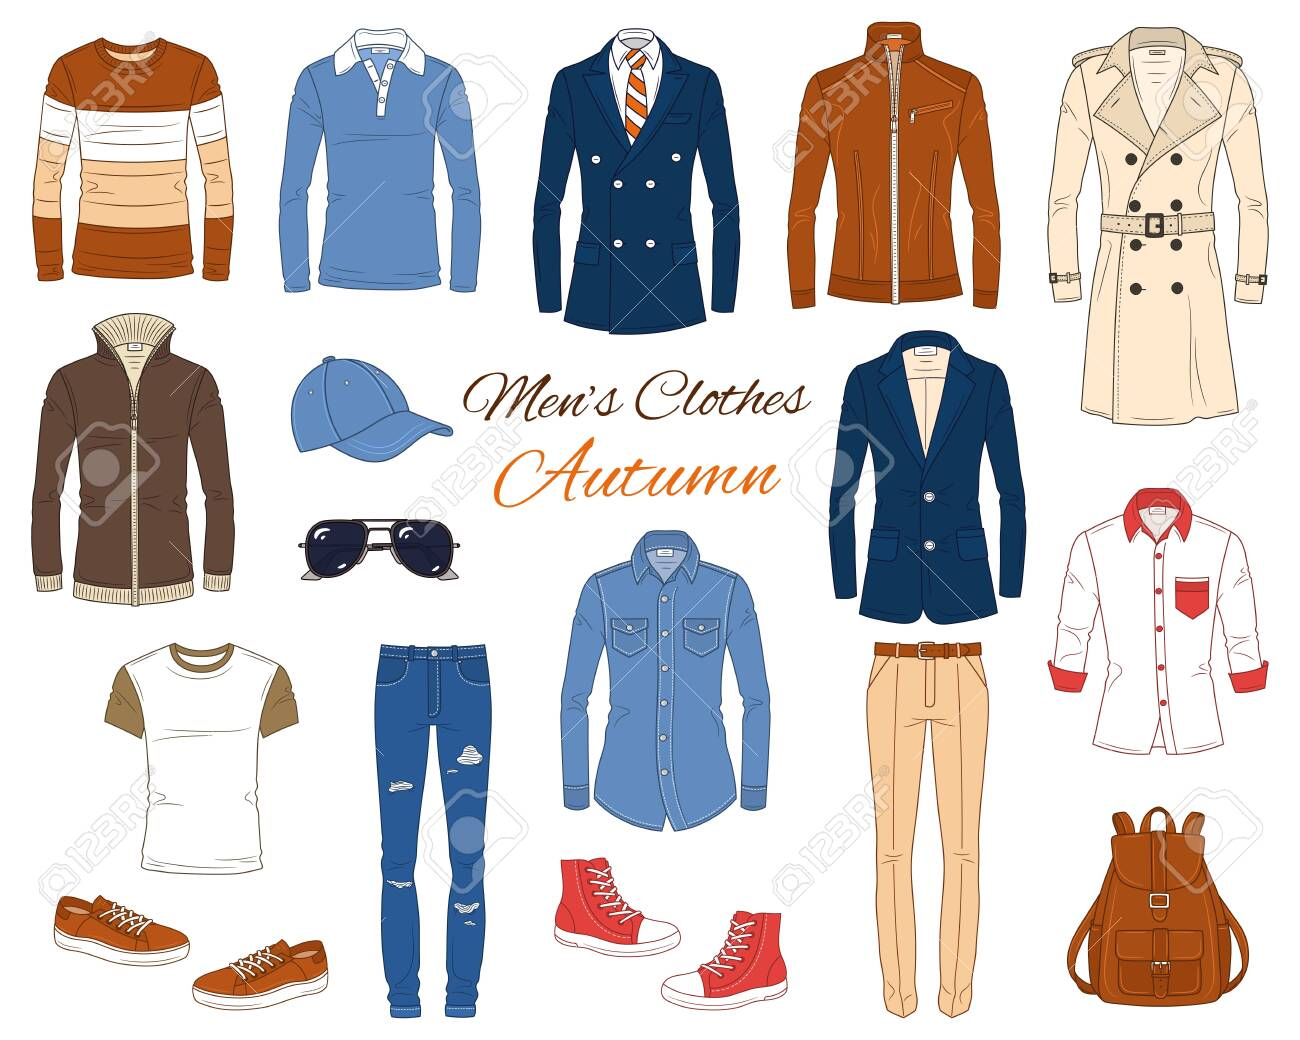 Men's Fashion set, clothes and accessories, autumn outfit: coats, leather jacket, jeans pants, shirts, sunglasses, backpack and baseball cap, vector illustration, isolated on white background. - 140286763